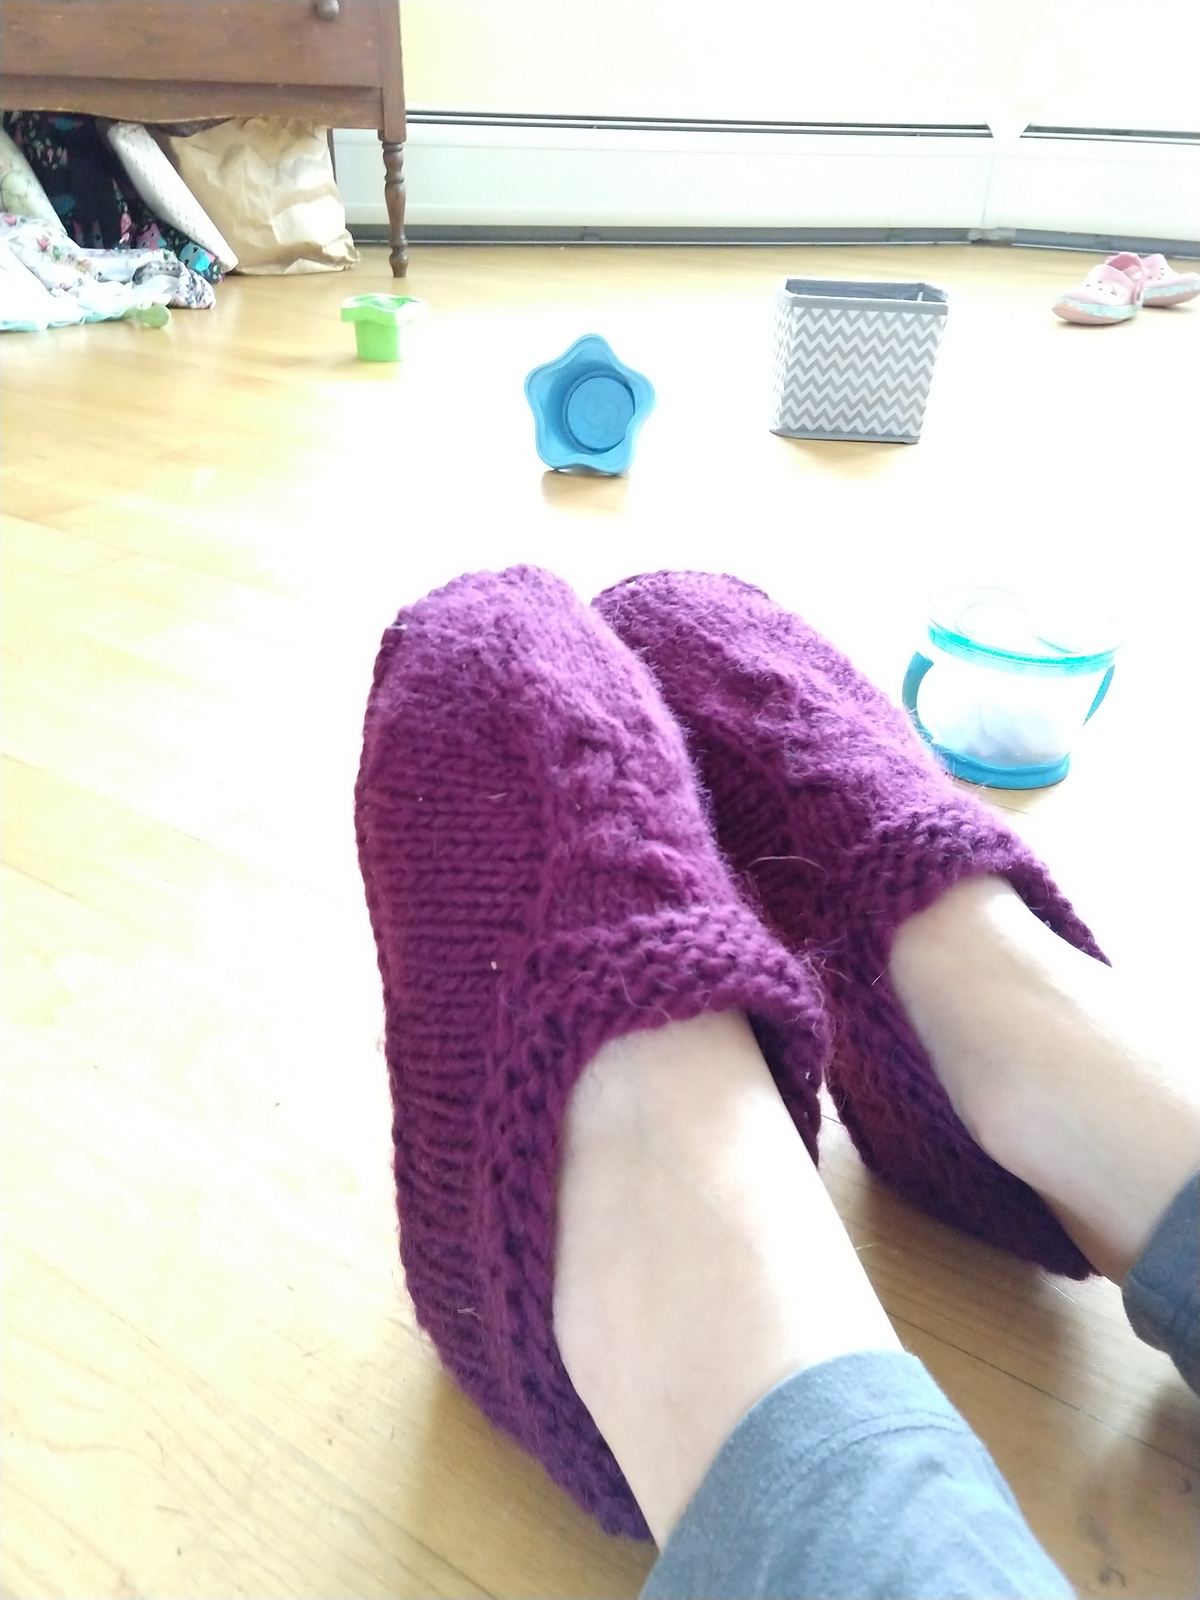 two feet in slippers